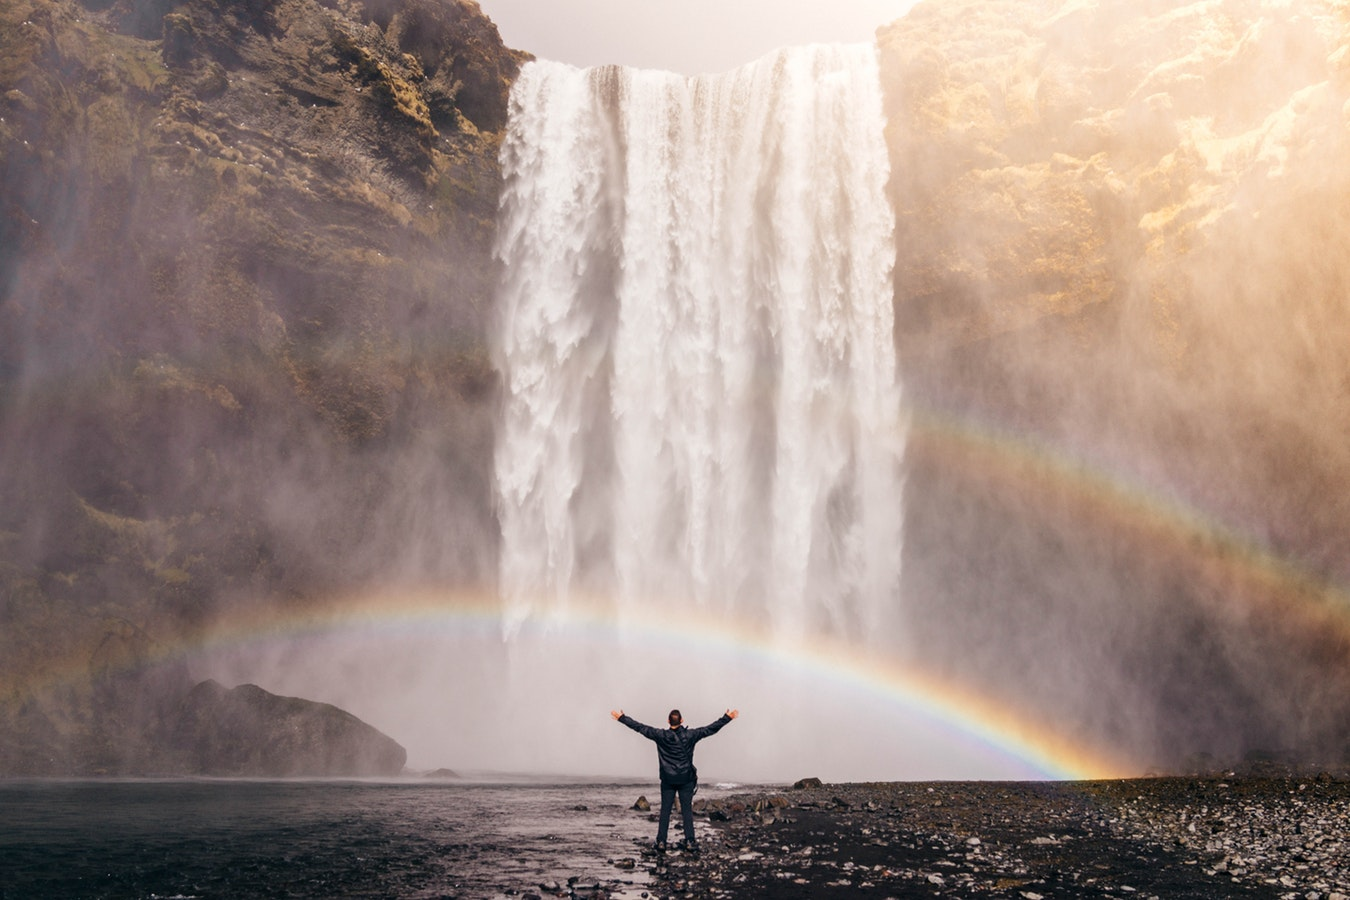 person with outstretched arms in front of a huge waterfall with a rainbow in front of hime